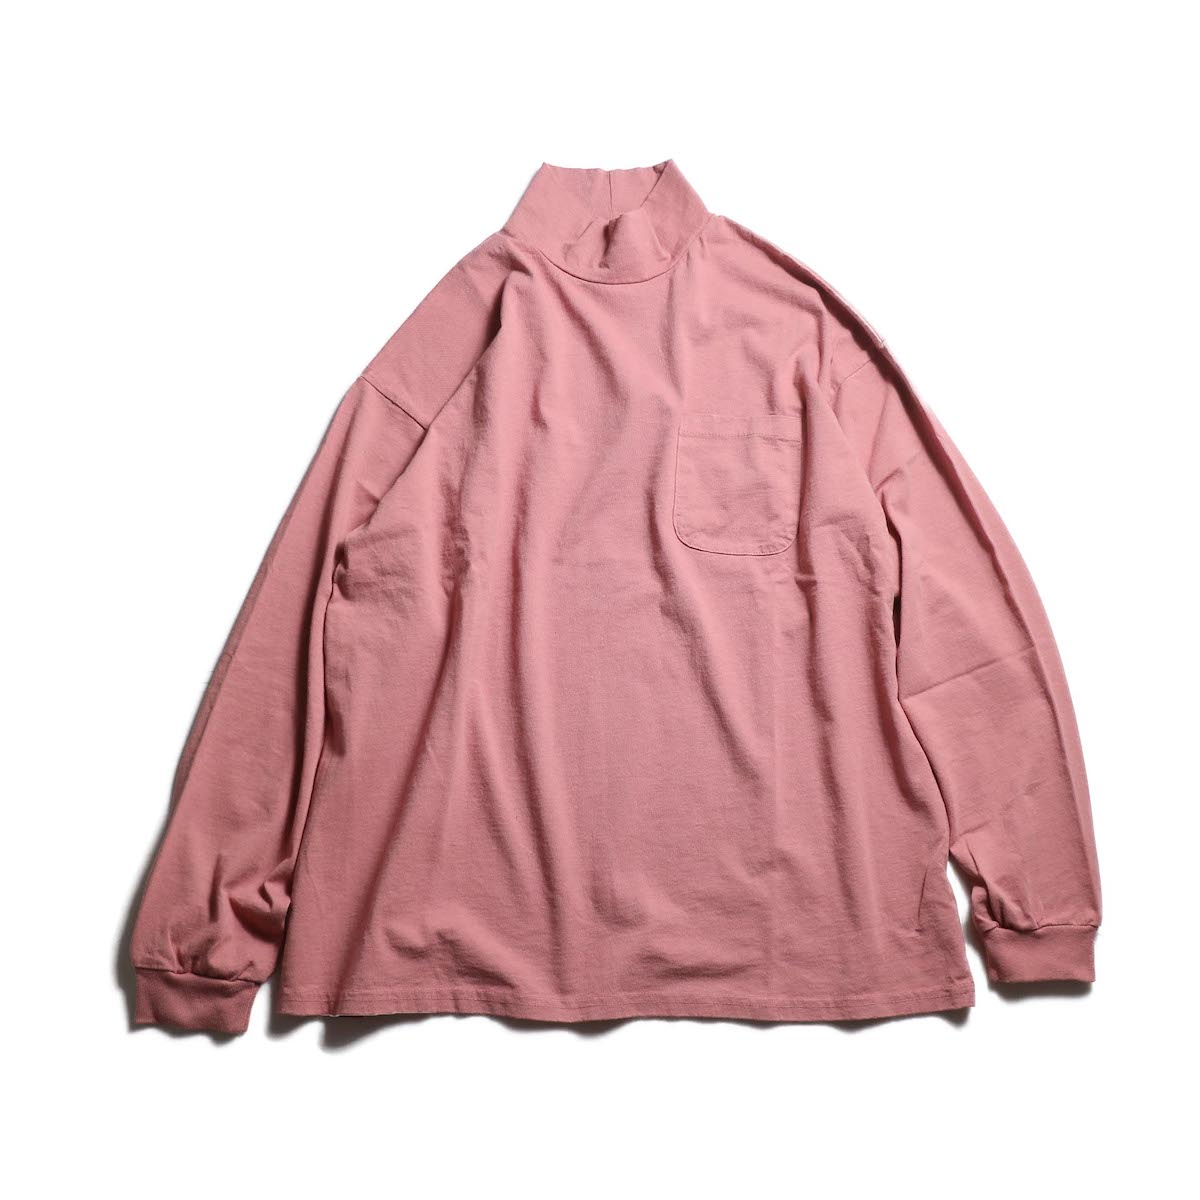 UNIVERSAL PRODUCTS / HEAVY WEIGHT L/S MOCK NECK T-SHIRT (Ash Pink)